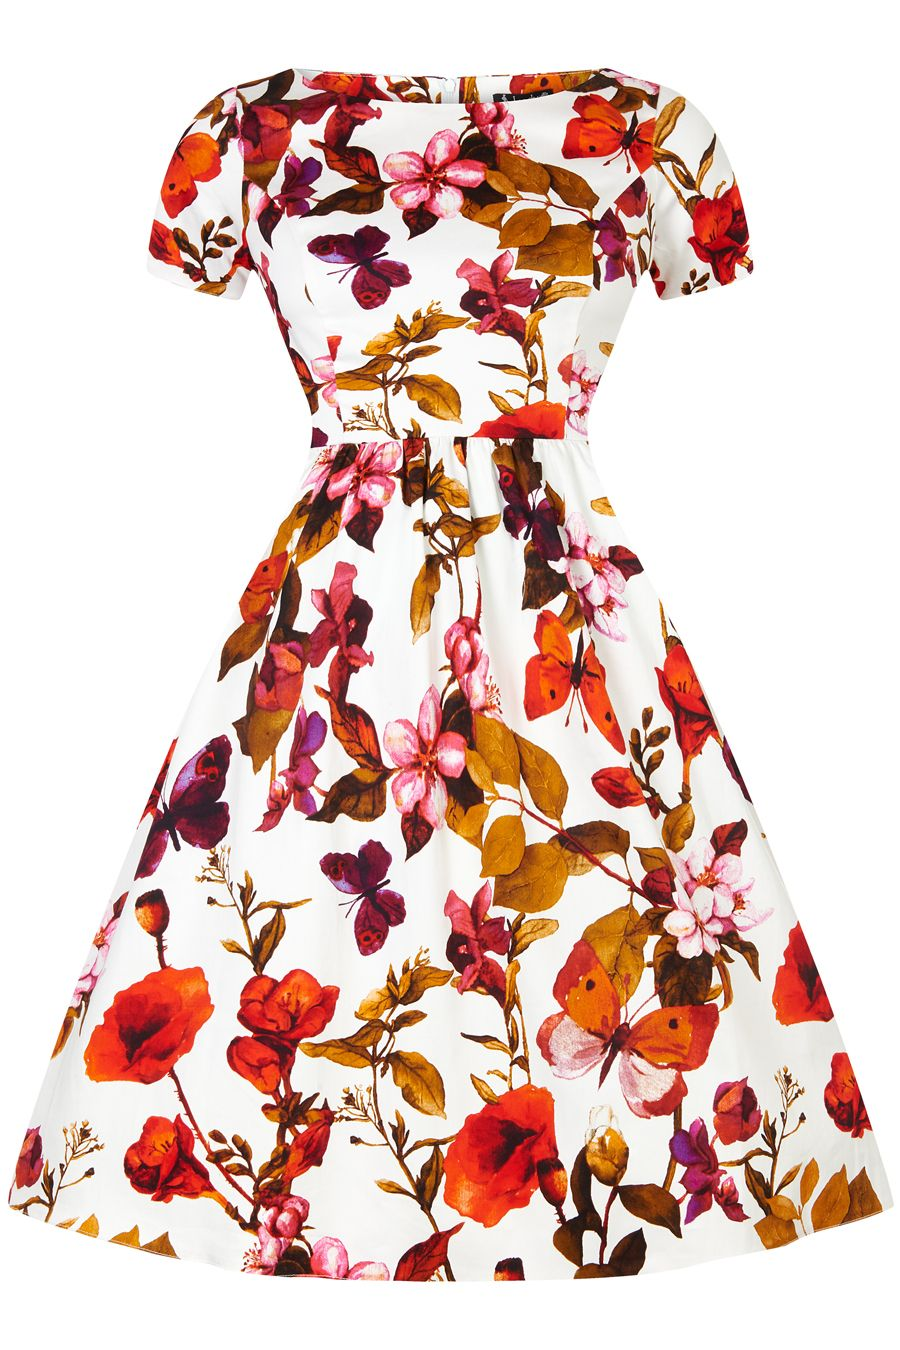 Brand New to Lady V London, the Eloise Dress features a 1950s style flared skirt and has a high...